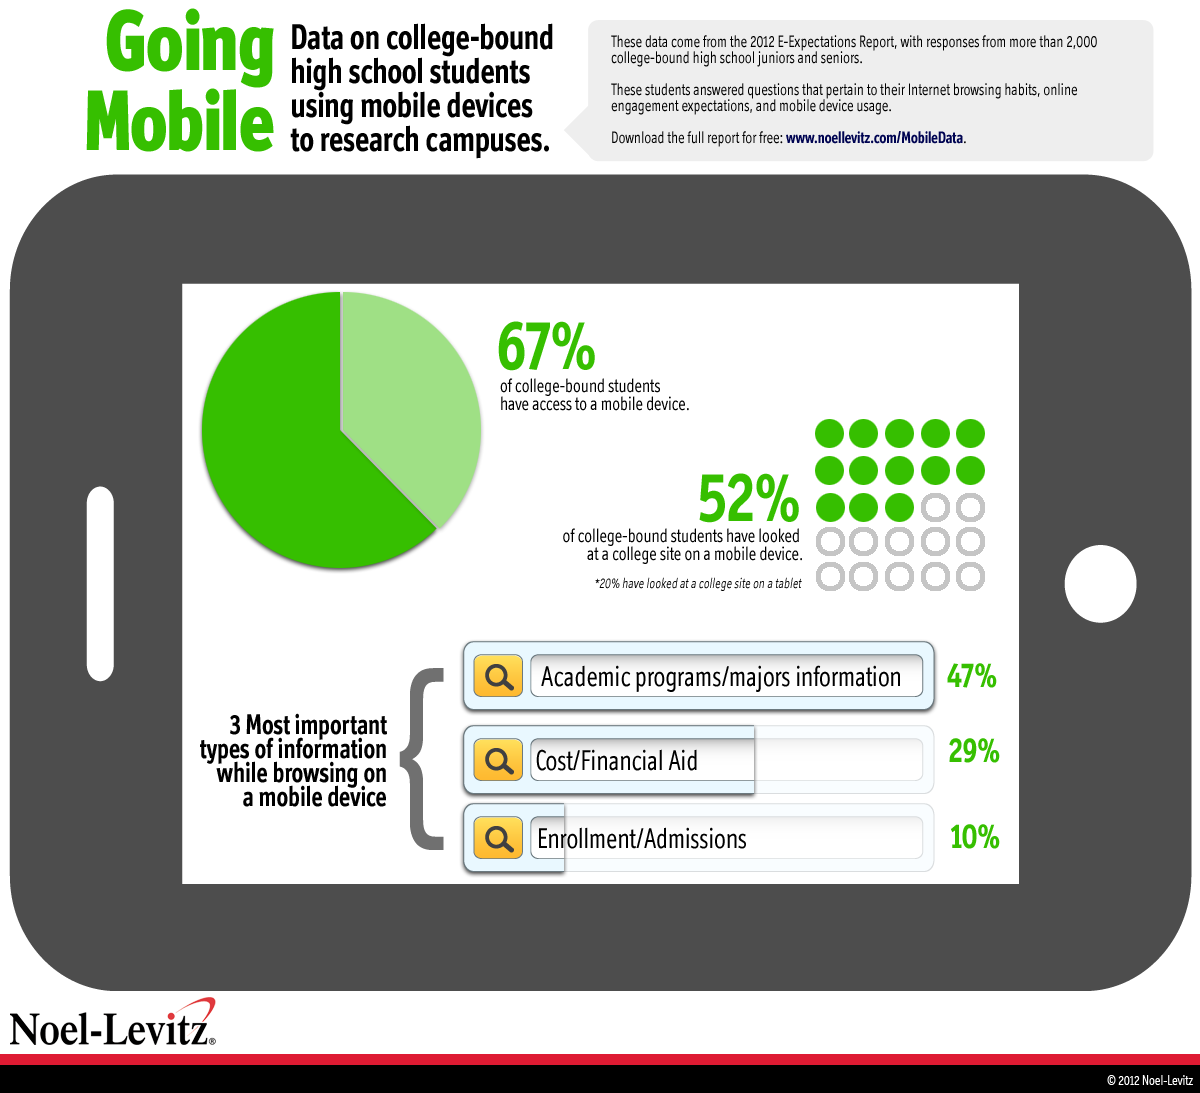 This graphic shows representations for the percentage of prospective college students that say they have access to mobile devices, what percentage say they look at college websites via mobile devices, and what the top types of information they say they're interested in finding via mobile.